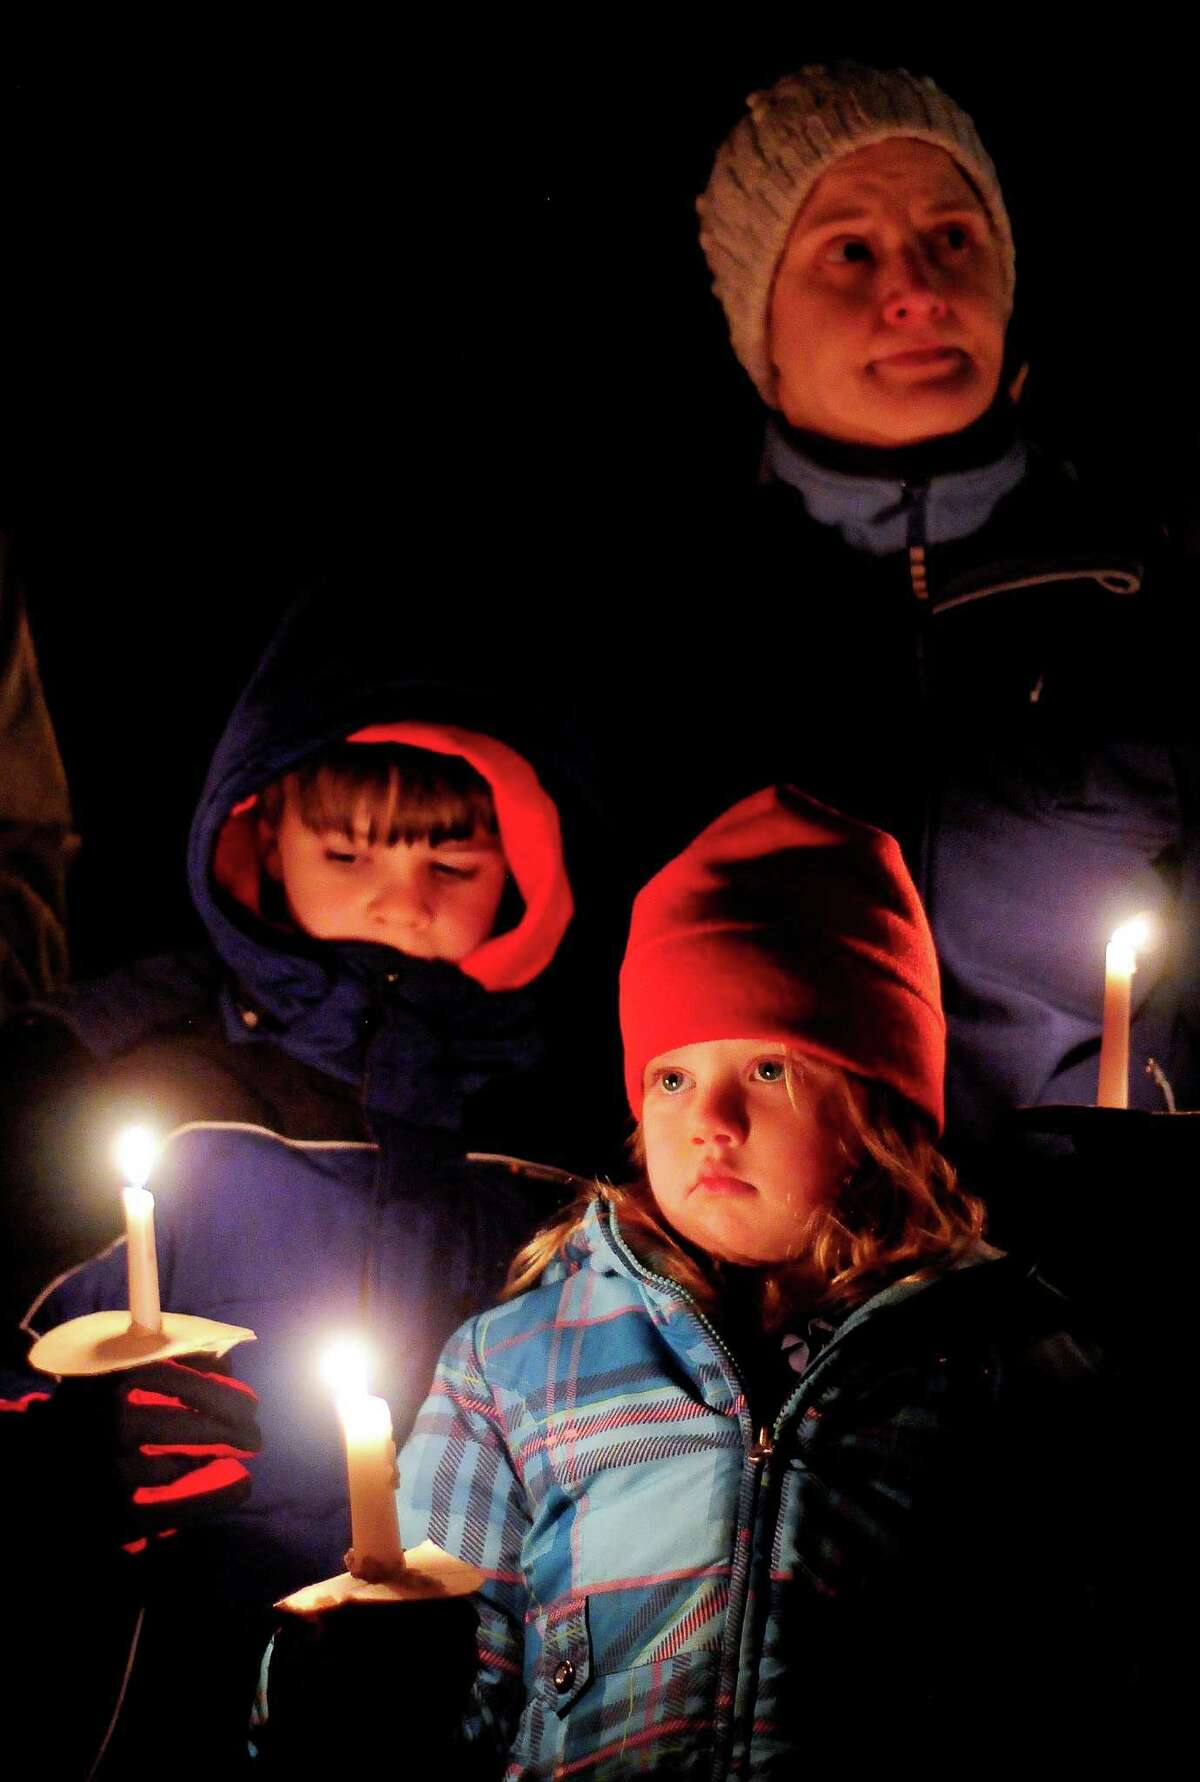 A family holds candles during a vigil in remembrance of the Newtown, Conn shooting victims at Green Lake Park in Seattle on Saturday, December 15, 2012. The vigil was held after a gunman killed his mother and then killed 20 children and six adults at Sandy Hook Elementary in Connecticut before taking his own life.